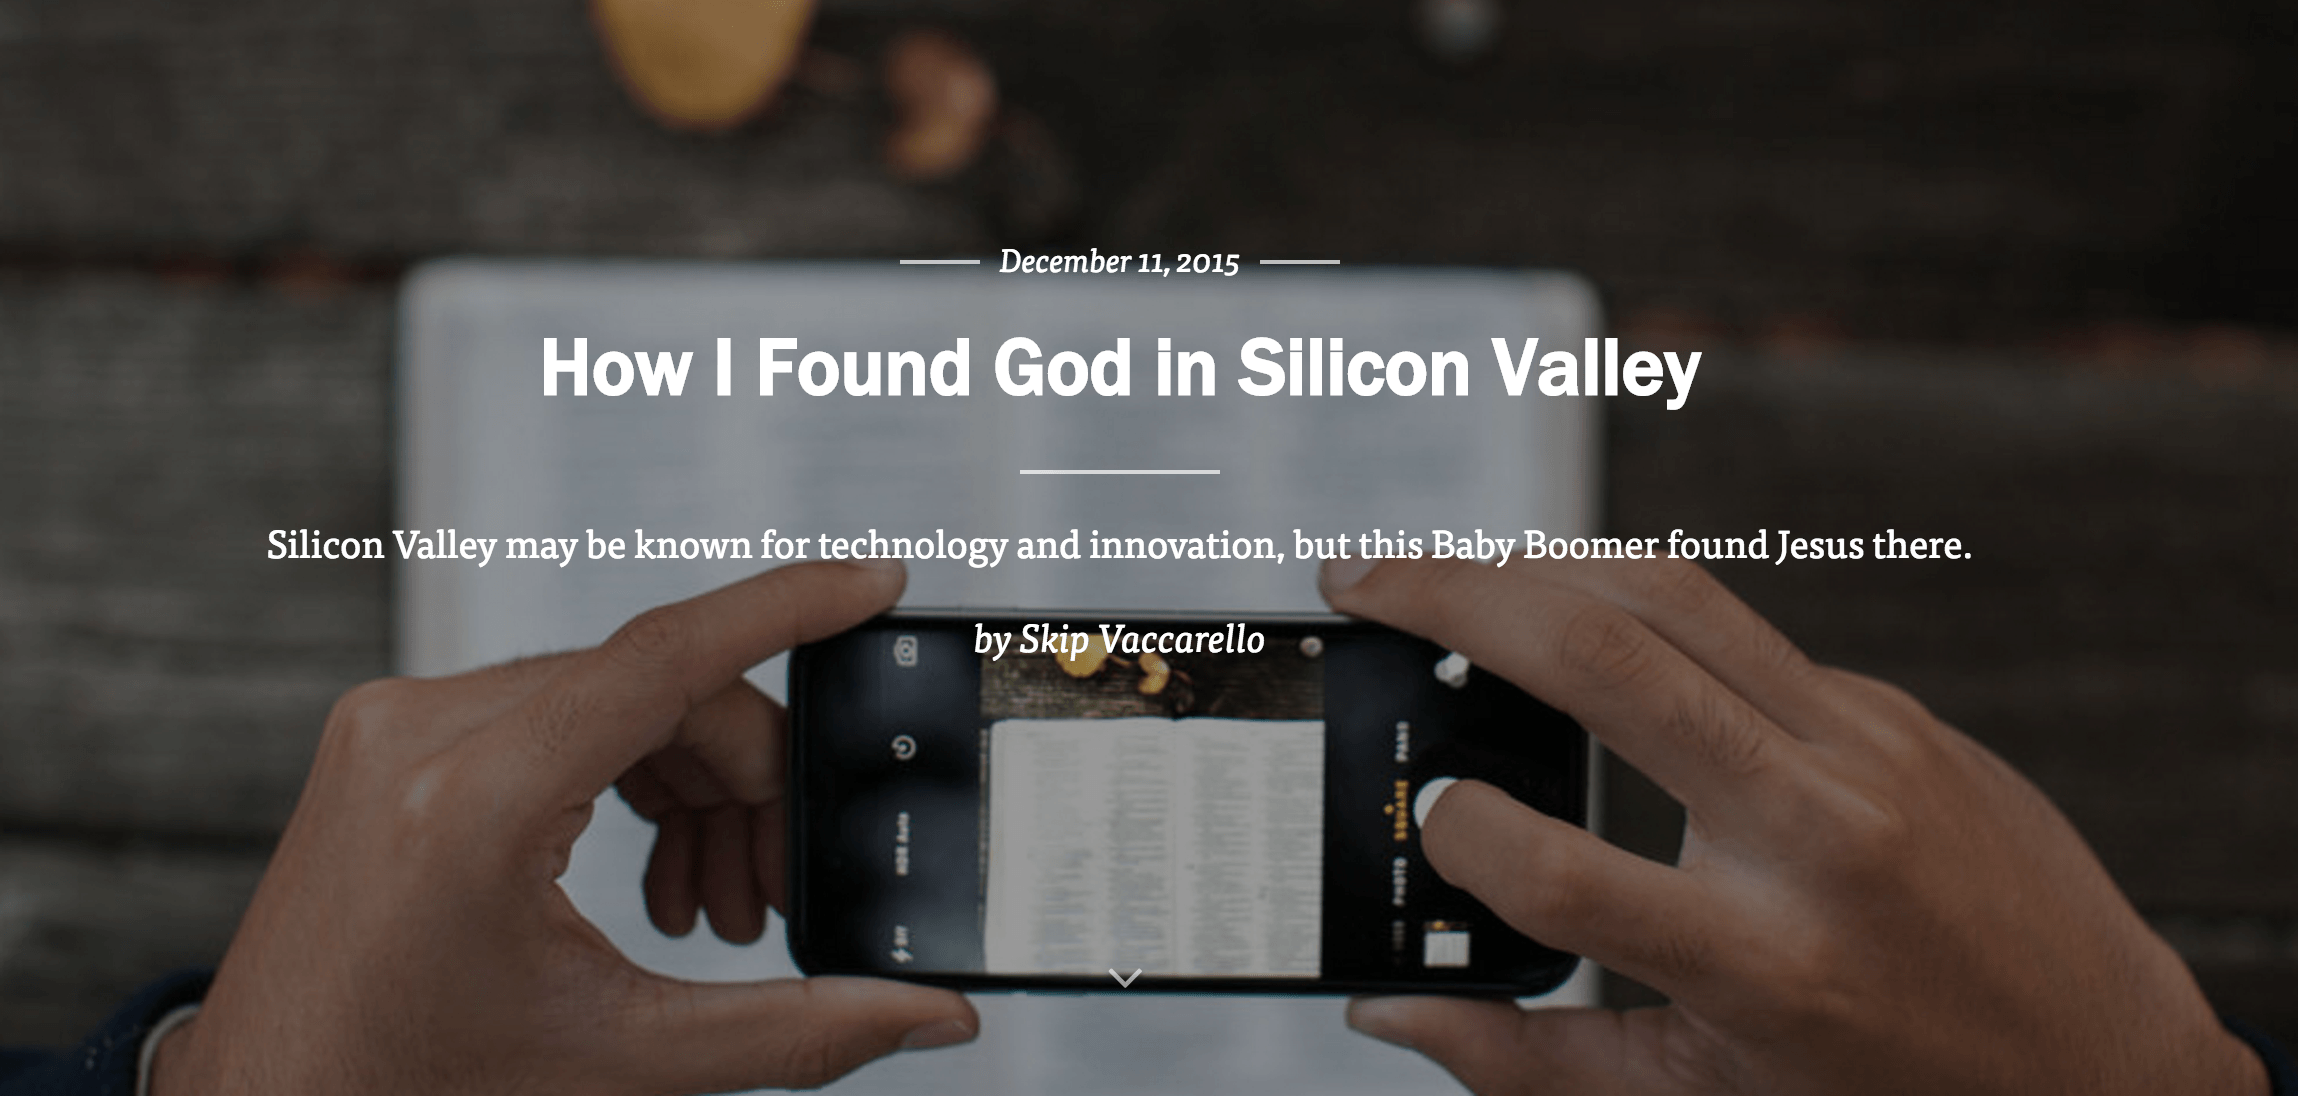 How I found God in Silicon Valley